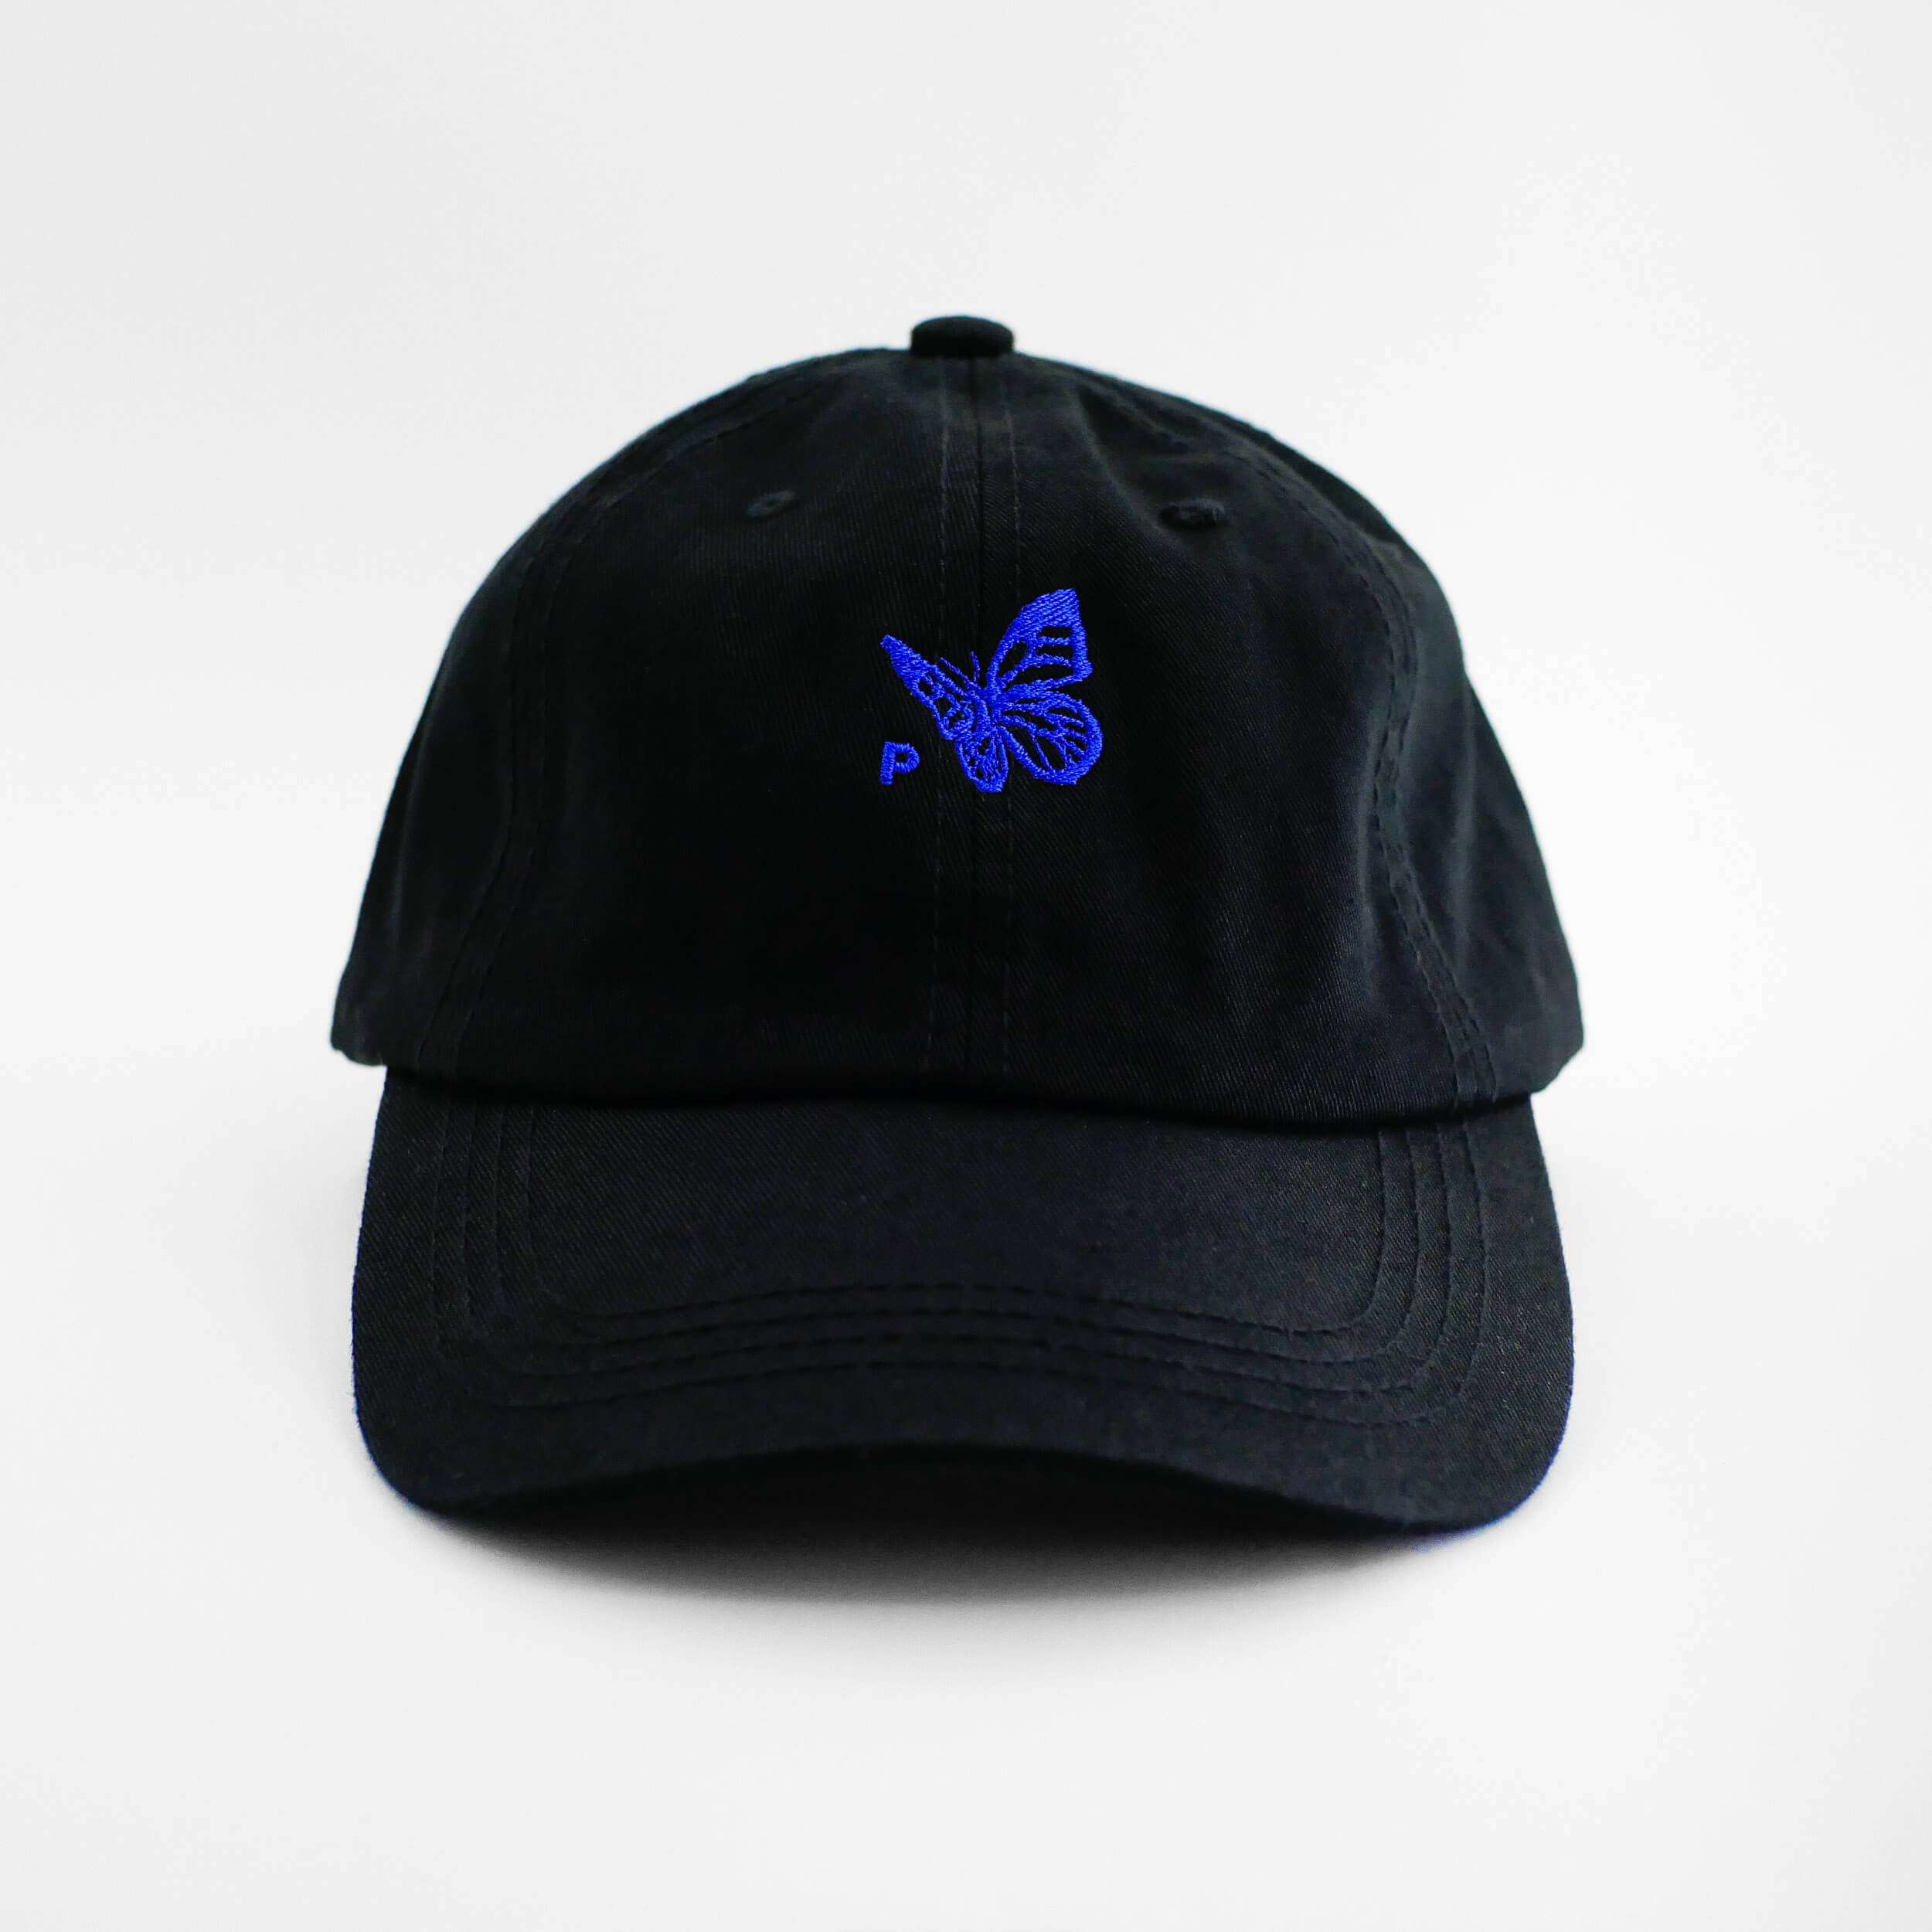 Front view of the embroidered Buttterfly Logo black dad hat from PHOSIS Clothing